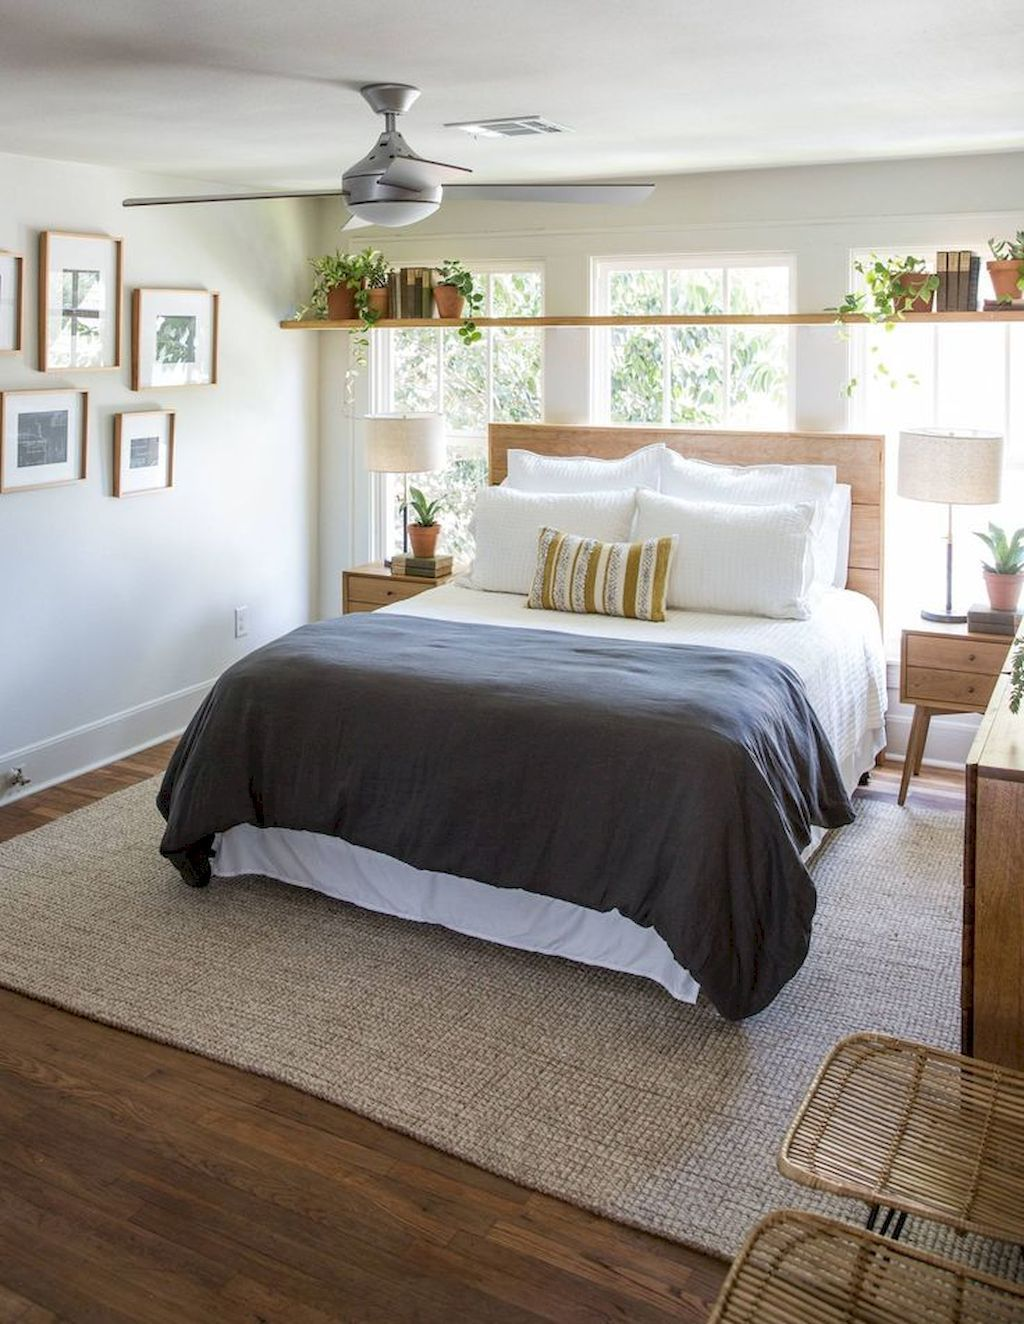 50 Inspiring Bedroom Design Ideas with Small Space images